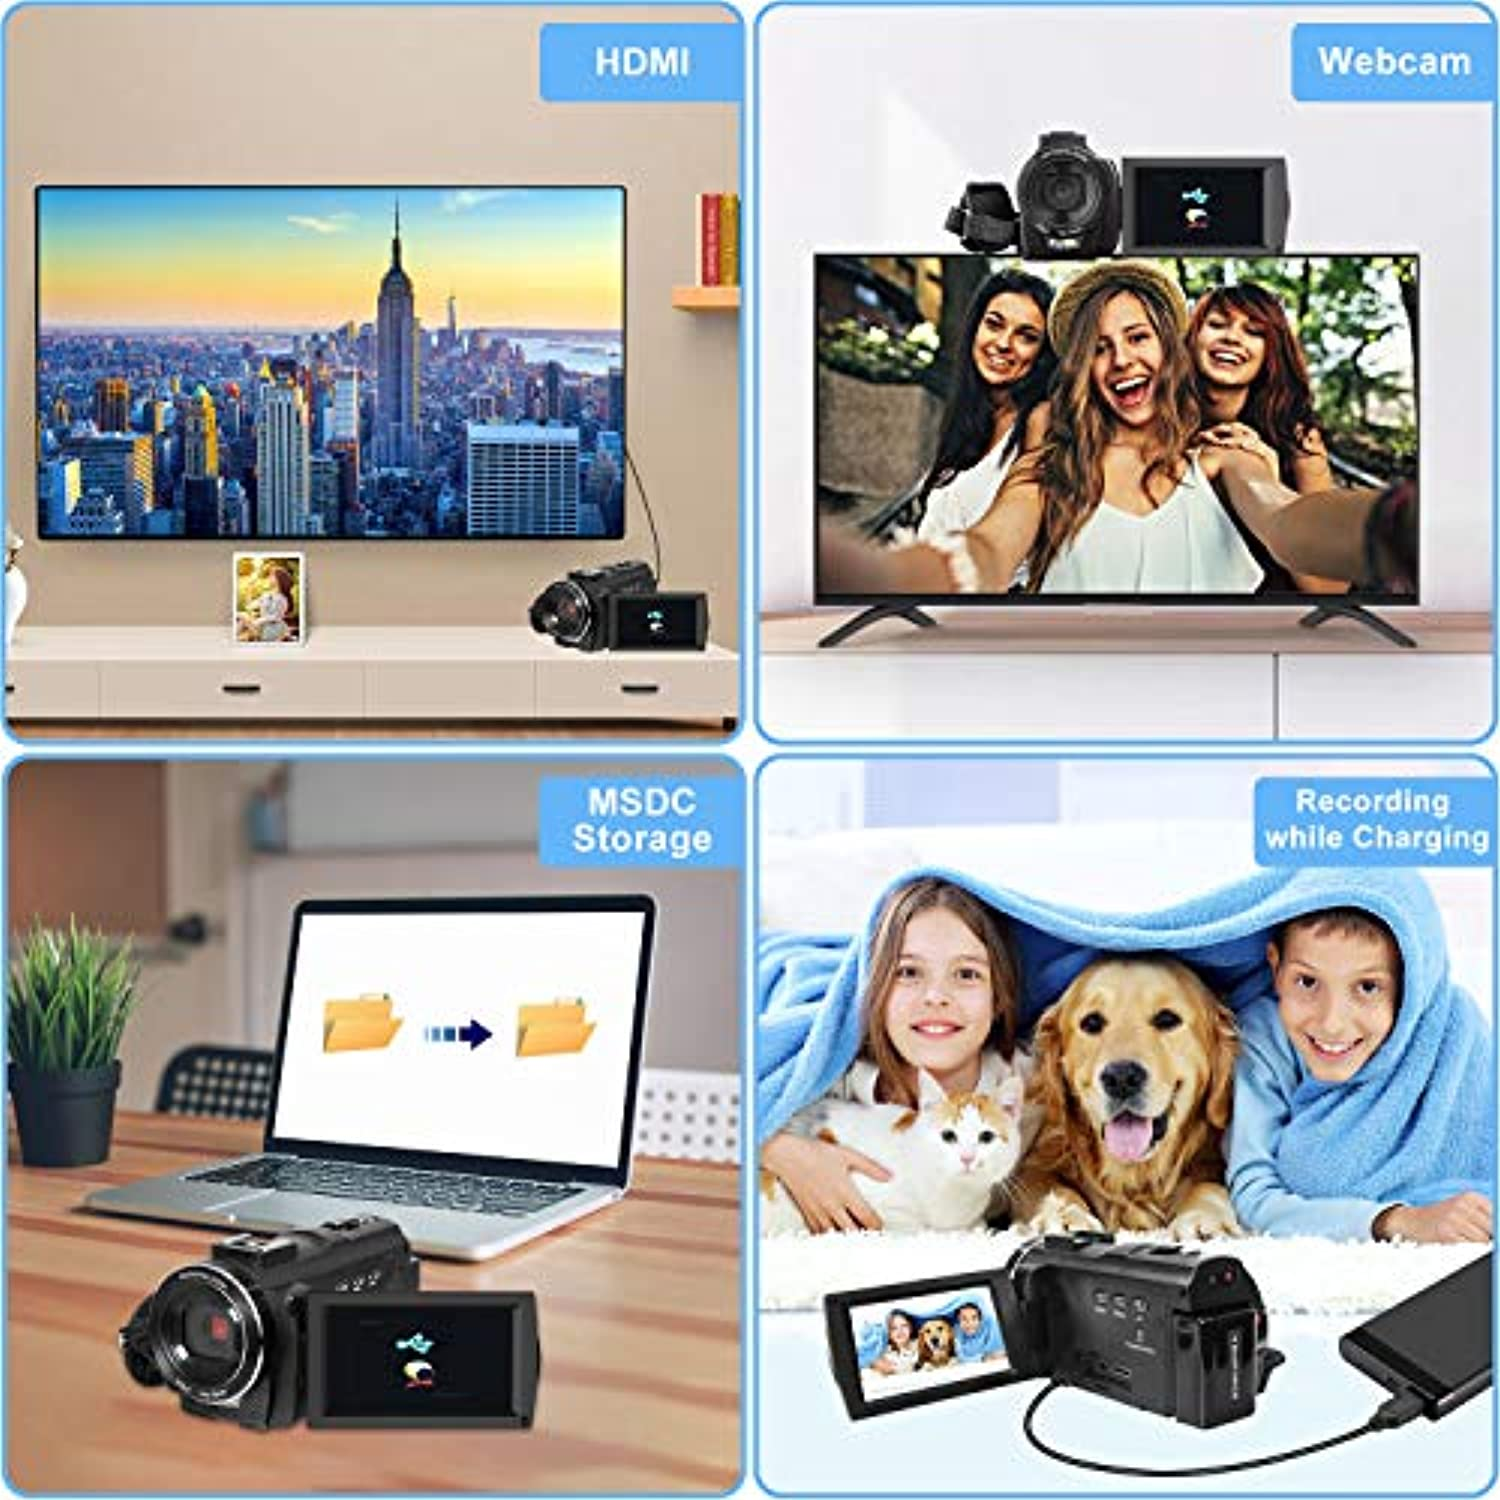 Classier: Buy VideoSky Video Camera Camcorder with Microphone, VideoSky 42MP HD 1080P 30FPS Digital Recording Camcorders for YouTube 64 GB Memory Card Vlogging IR Night Webcam Time-Lapse Slow Motion,Touch Screen, Lens Hood